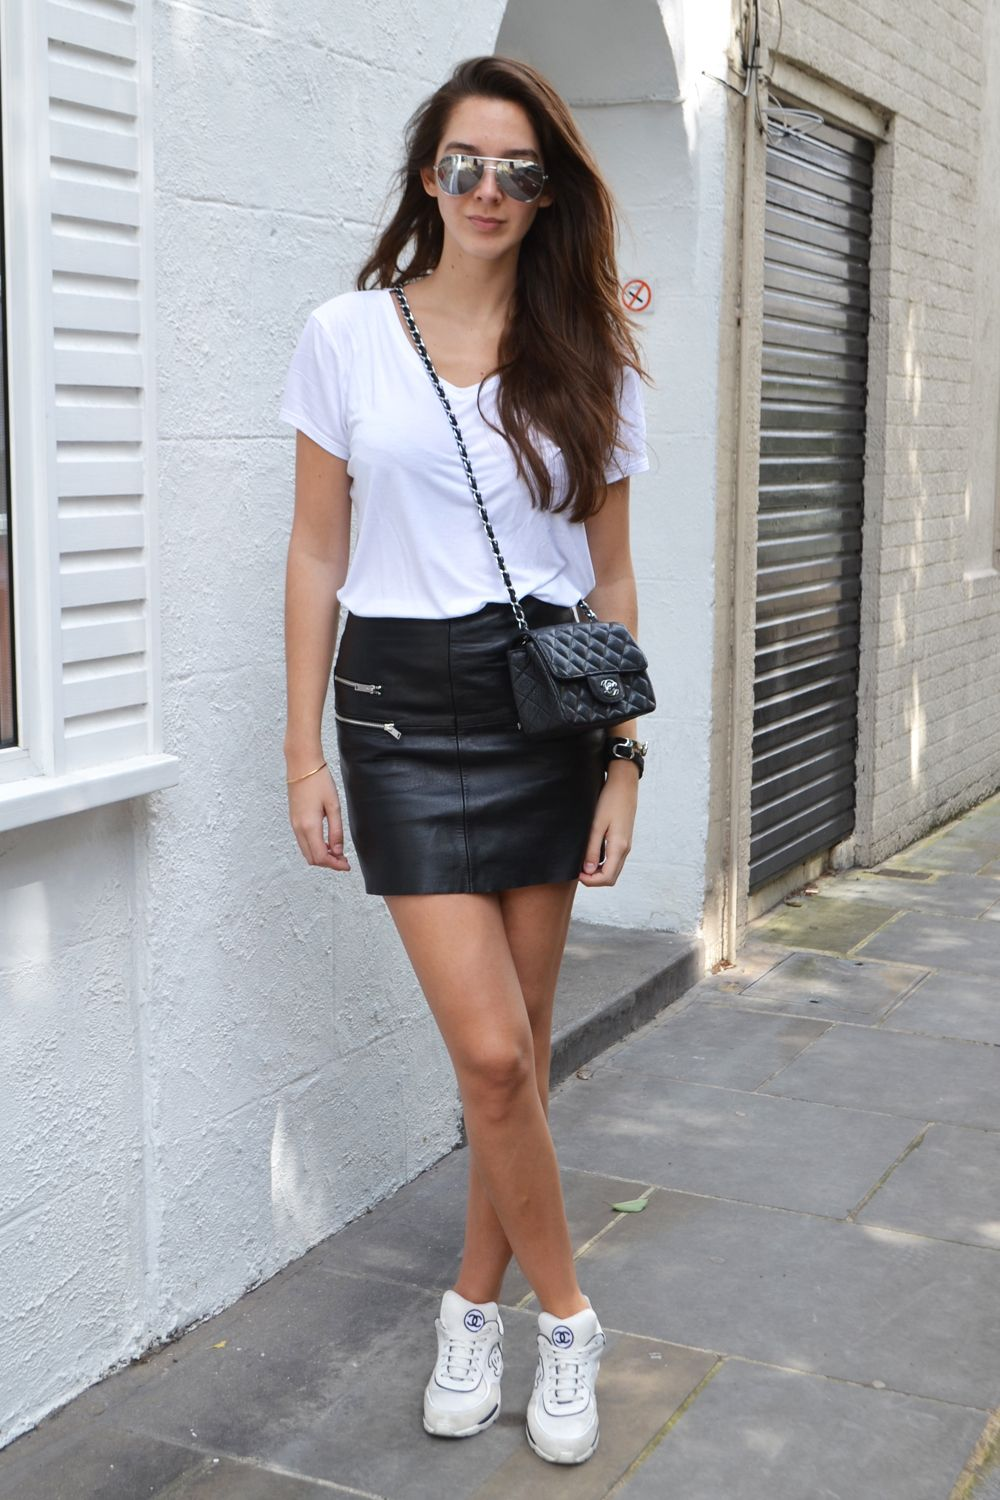 How To Wear A Leather Skirt Casually | Jill Dress